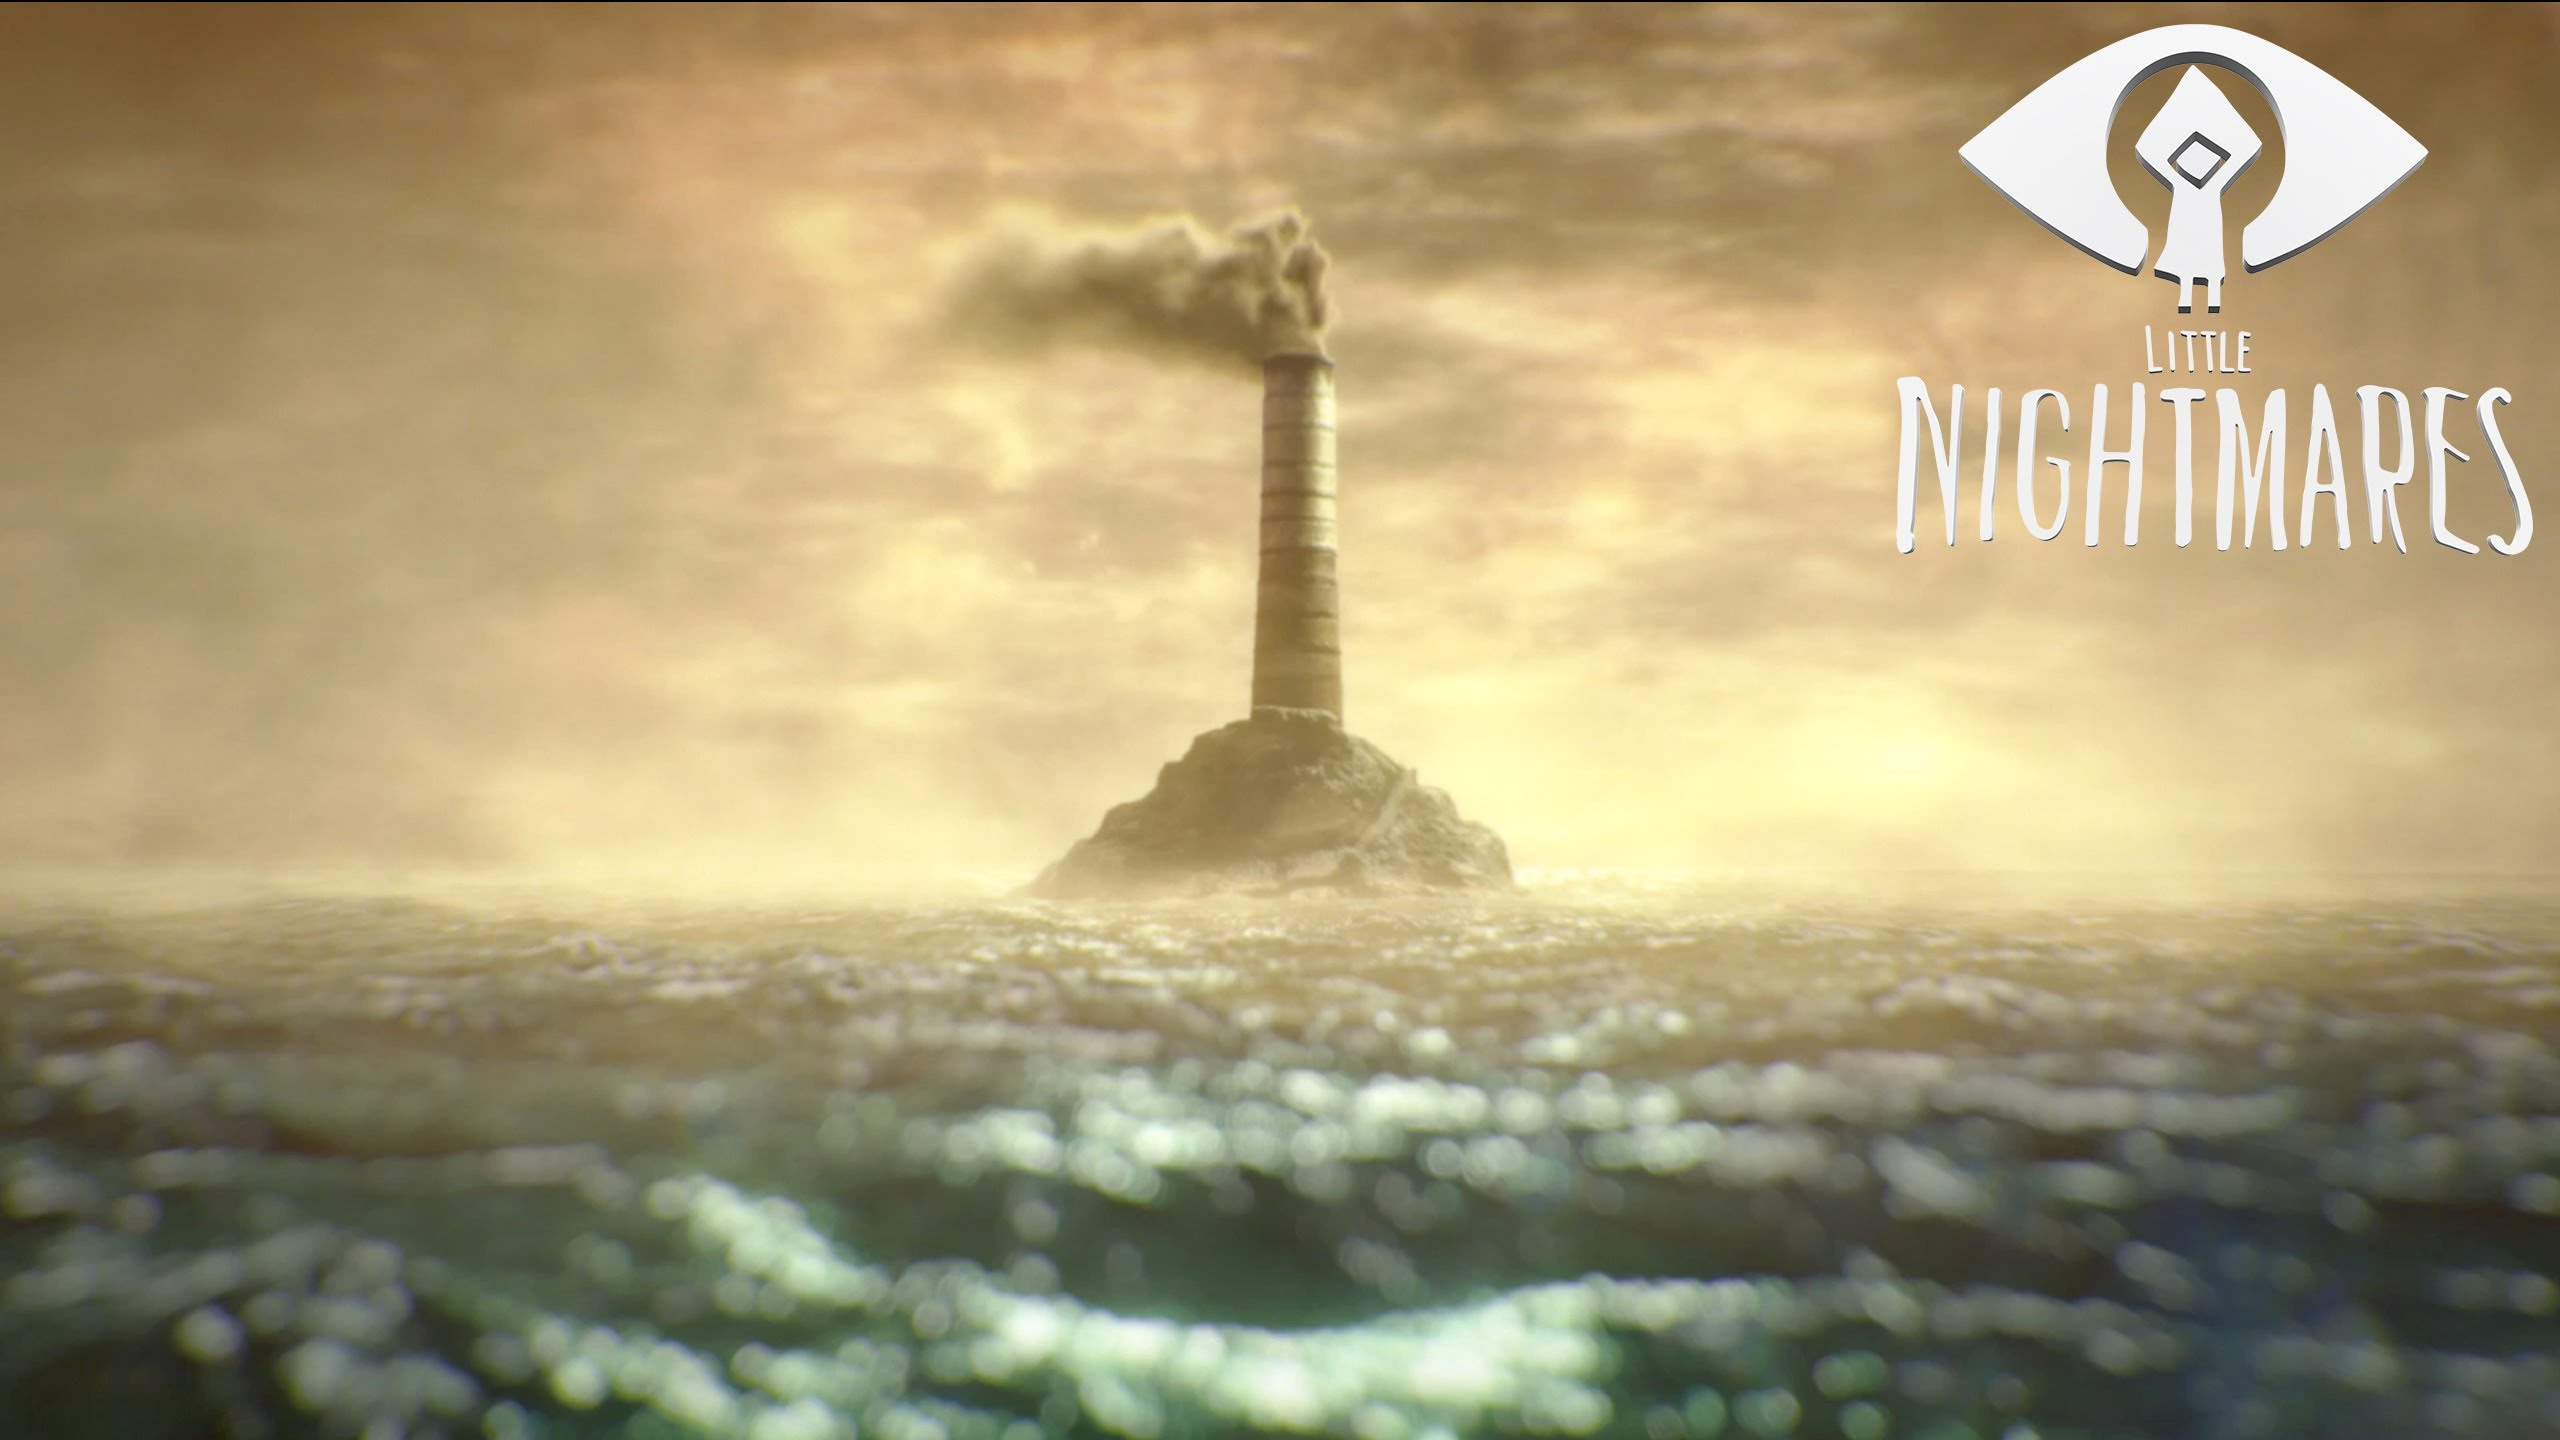 Little Nightmares Wallpapers High Quality Download Free